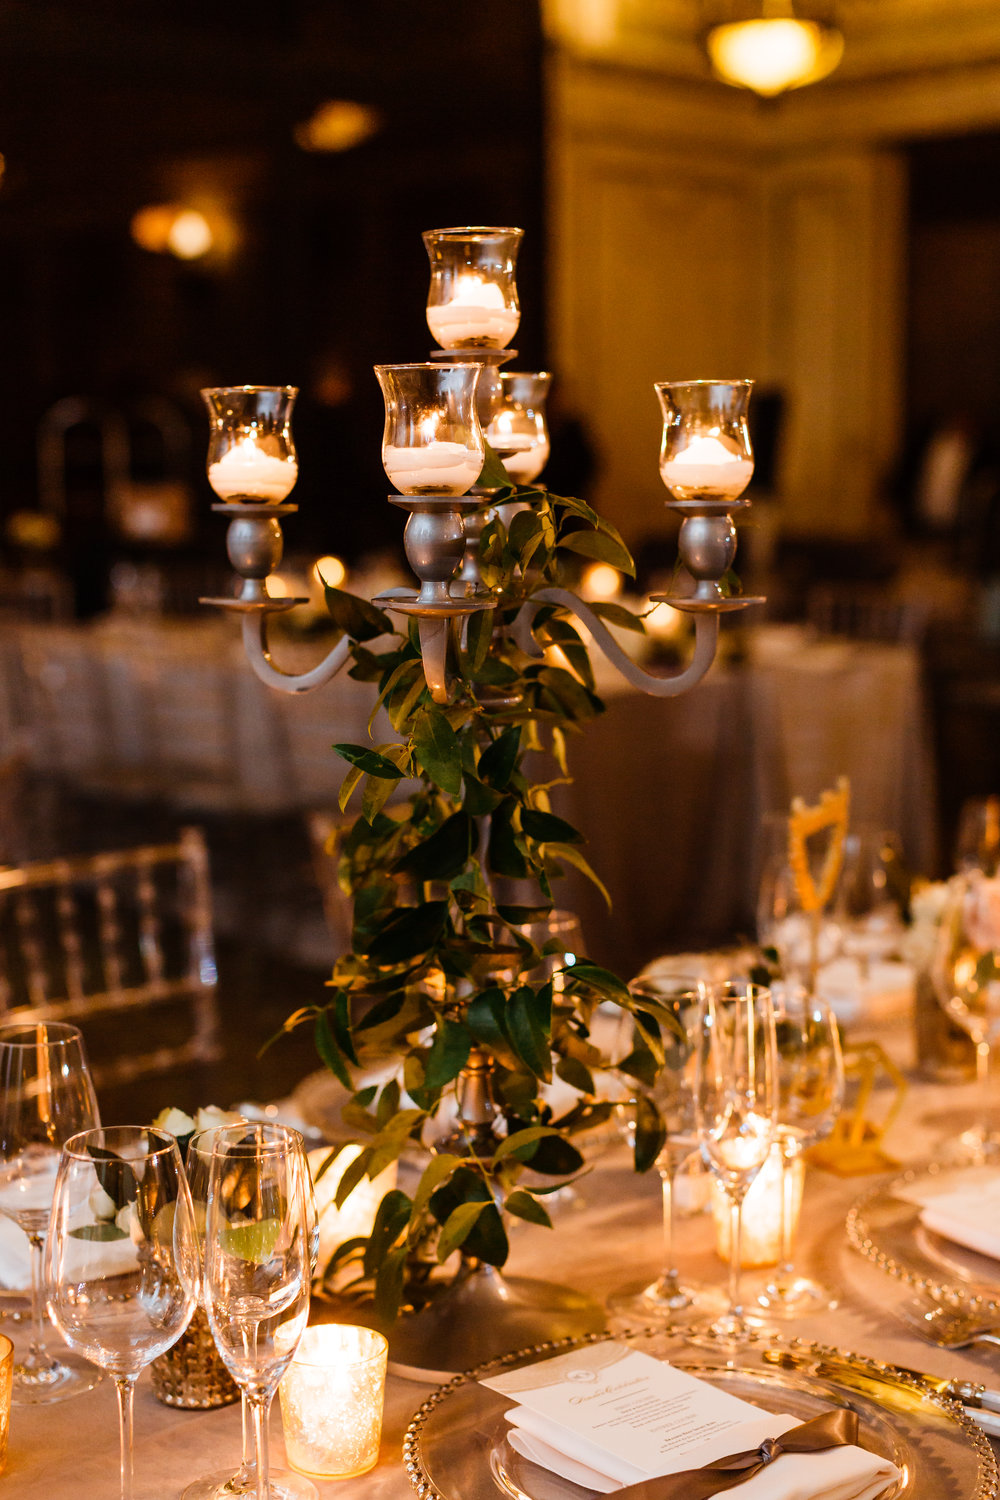 Fleur-Inc-Chicago-Cultural-Center-Jill-Tiongco-Photography-FiveGrain-Events-Winter-Wedding-Candelabra-Centerpiece